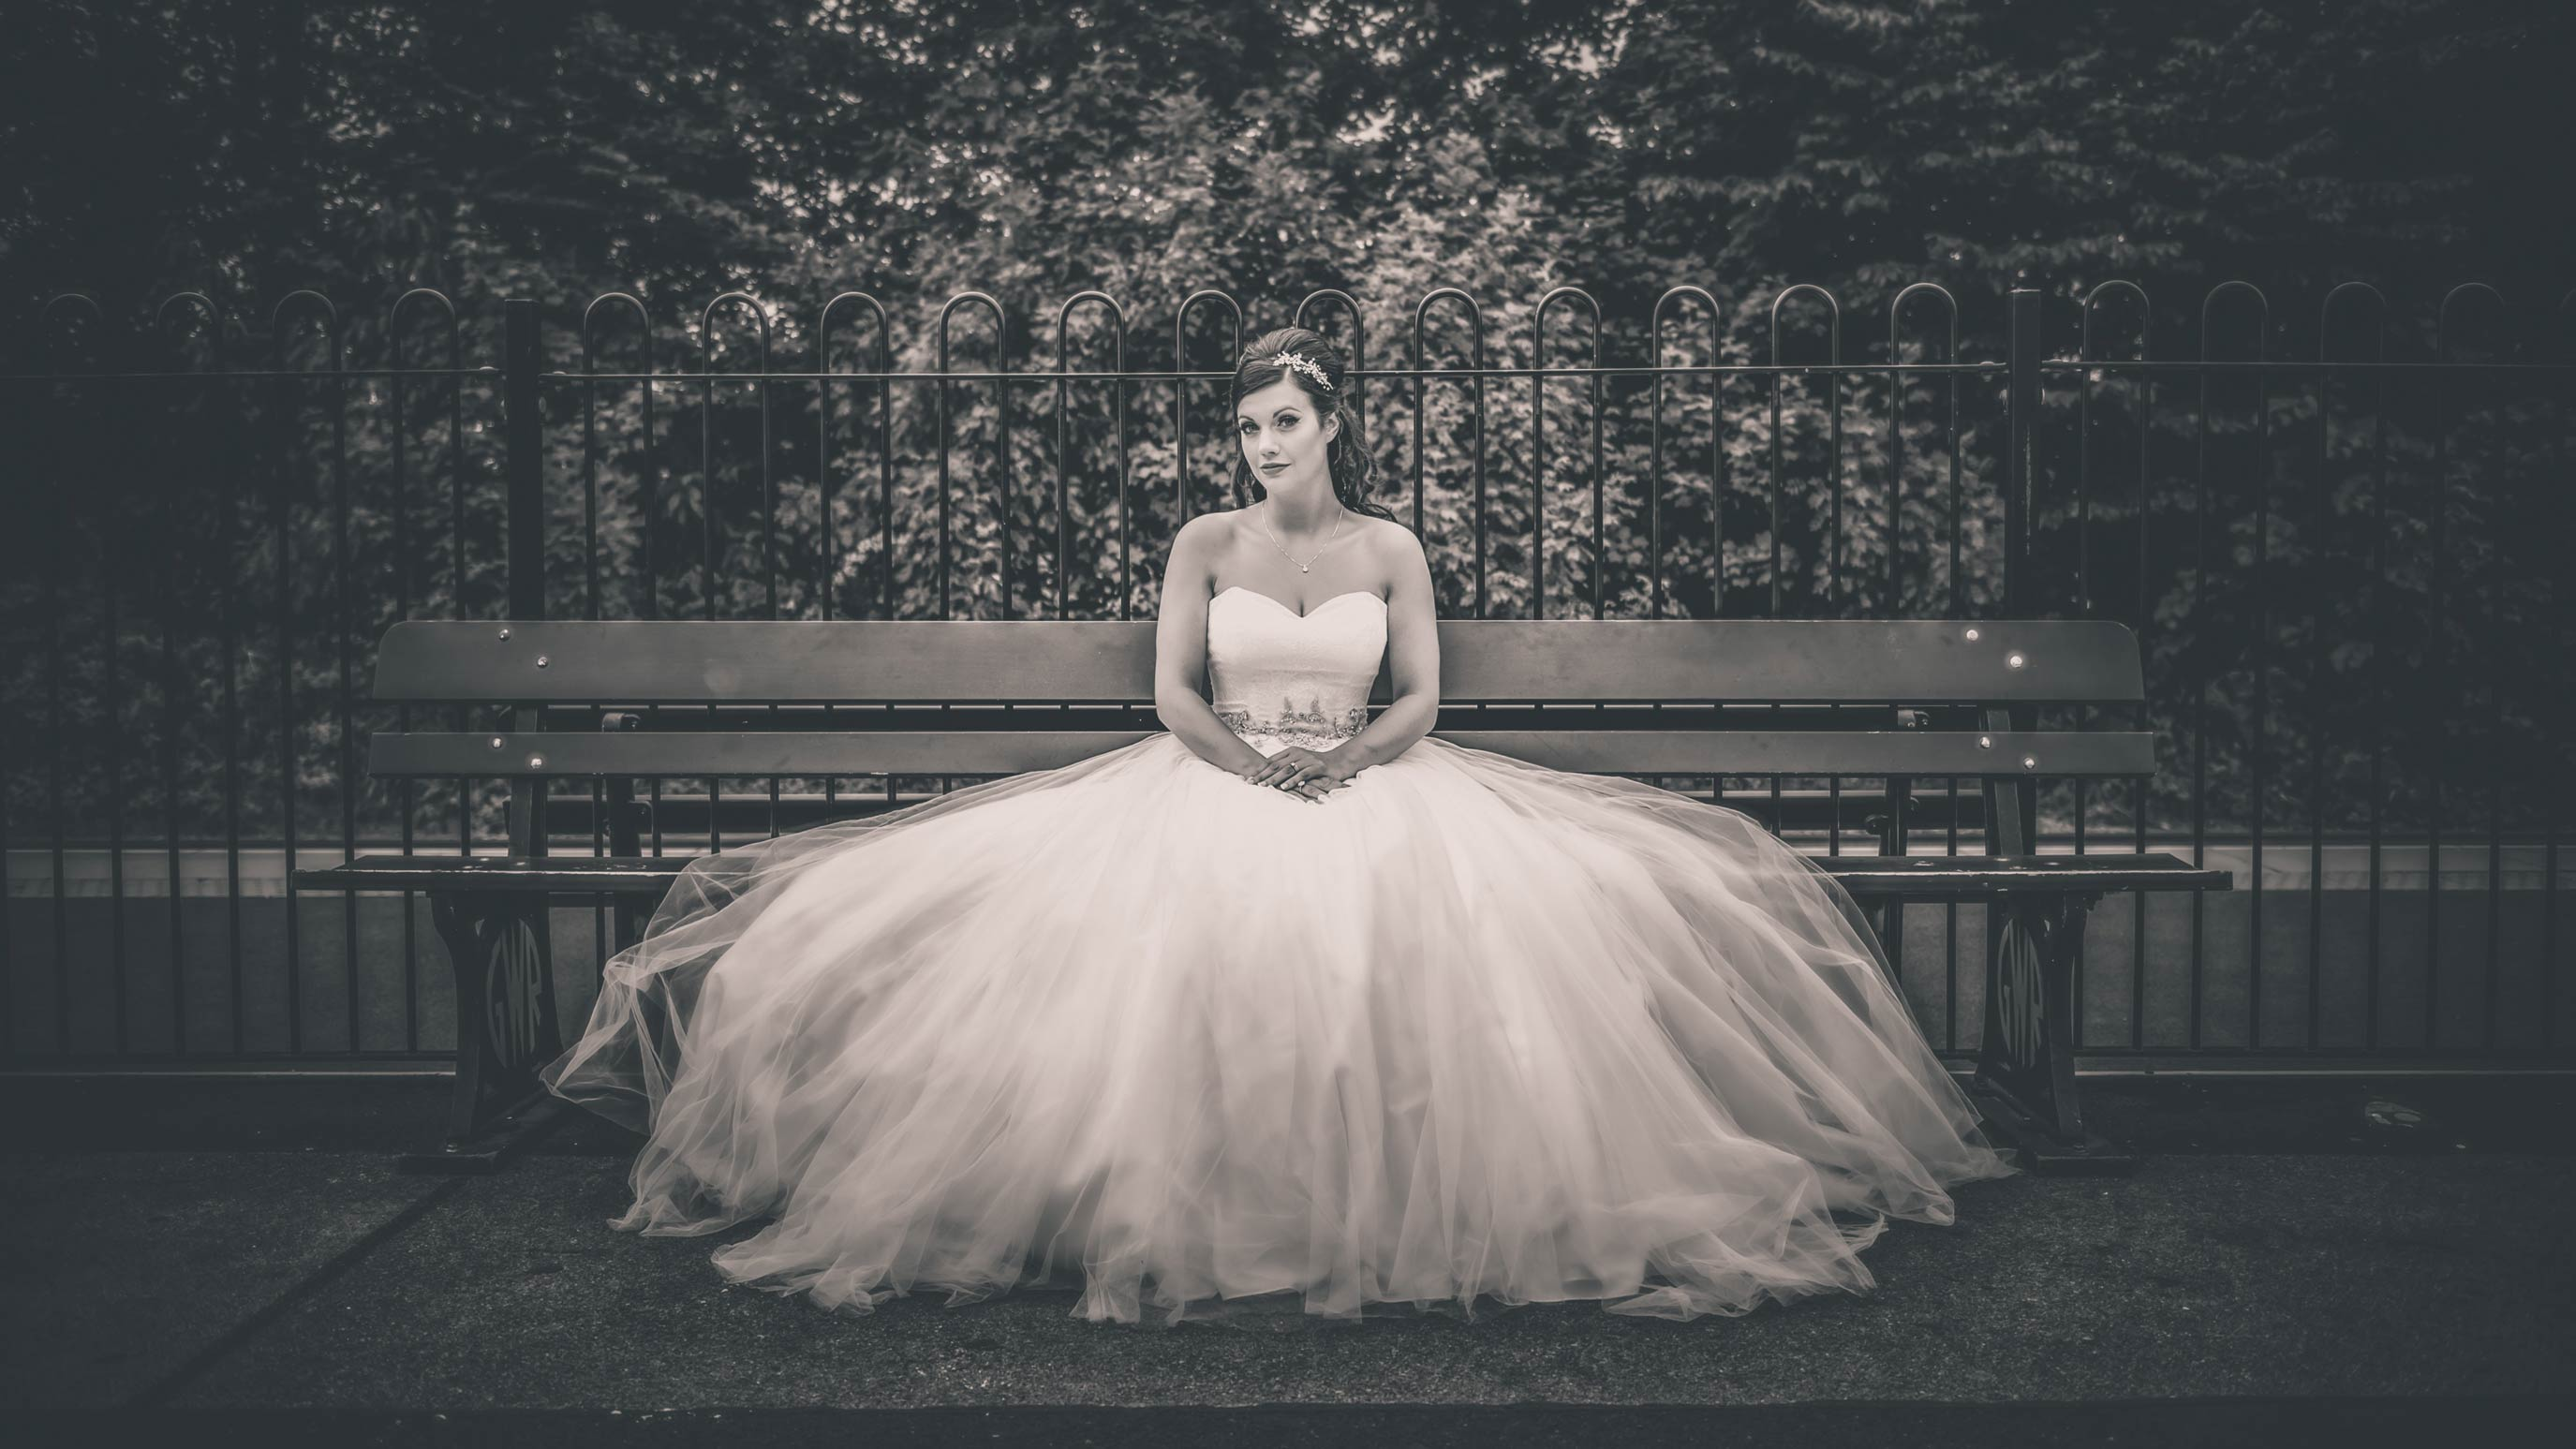 Relaxed wedding photography Solihull - Bridal Portrait sitting with flowing dress